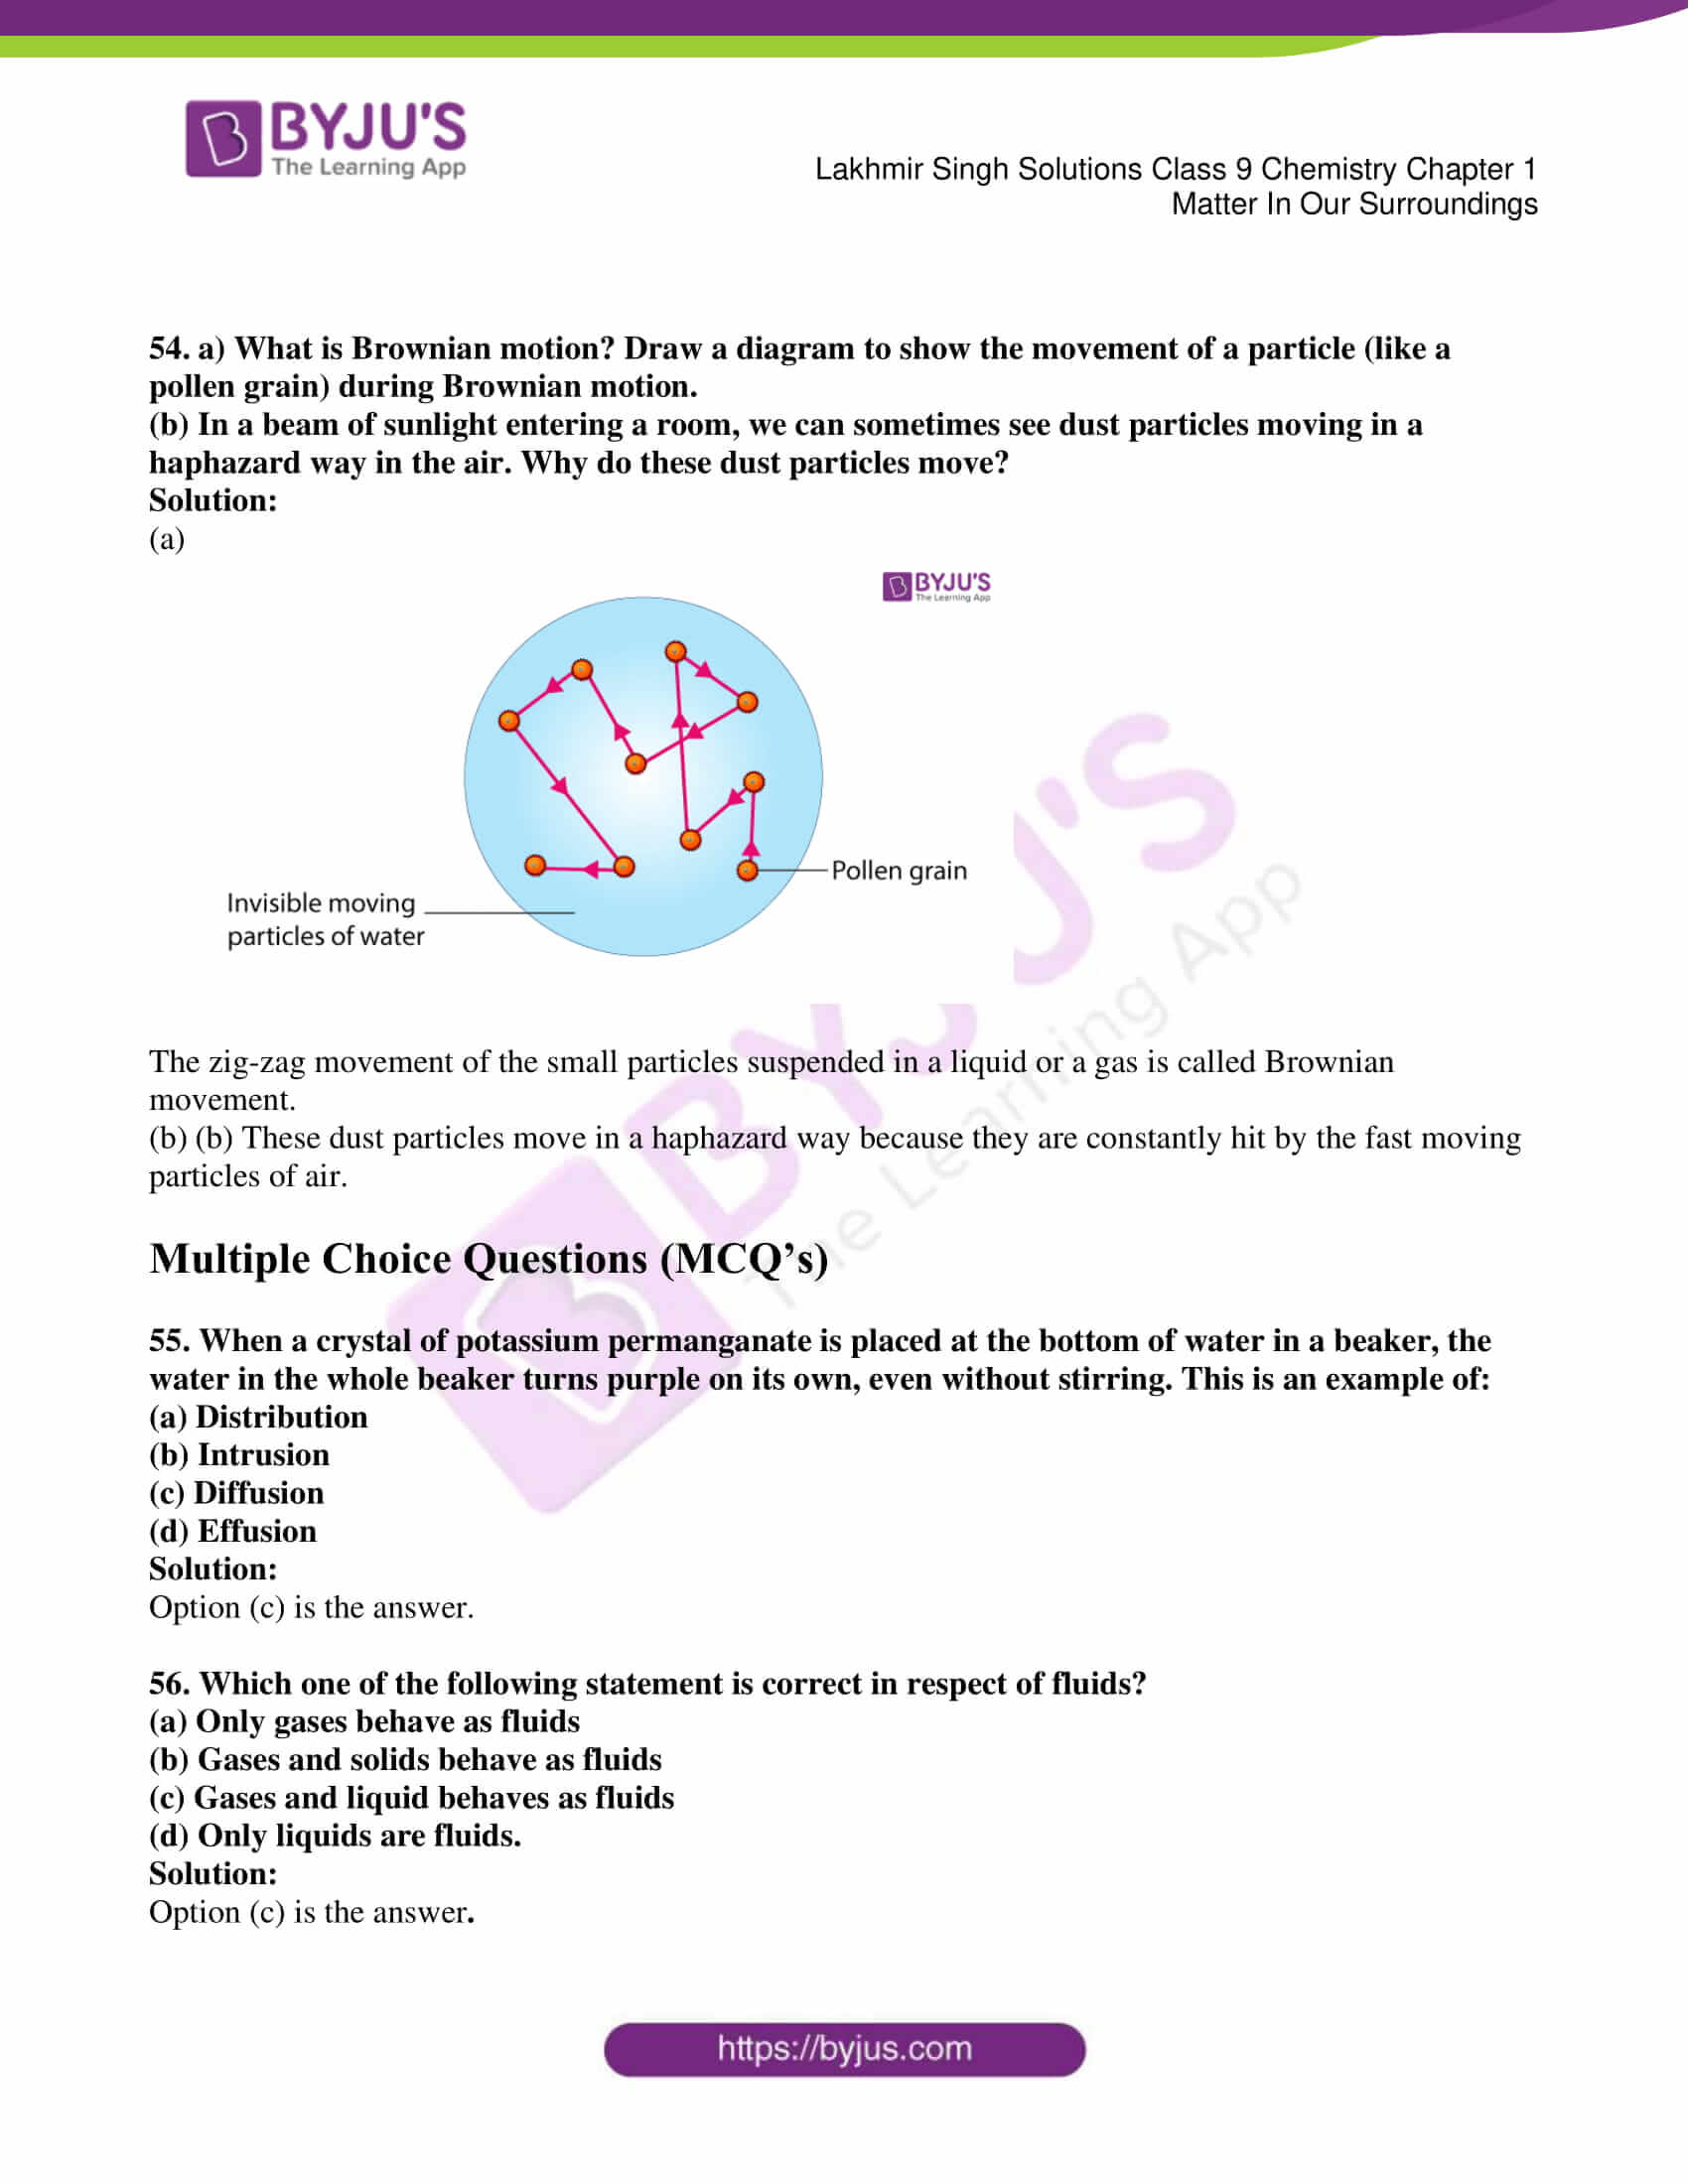 lakhmir singh solutions class 9 chemistry chapter 1 10